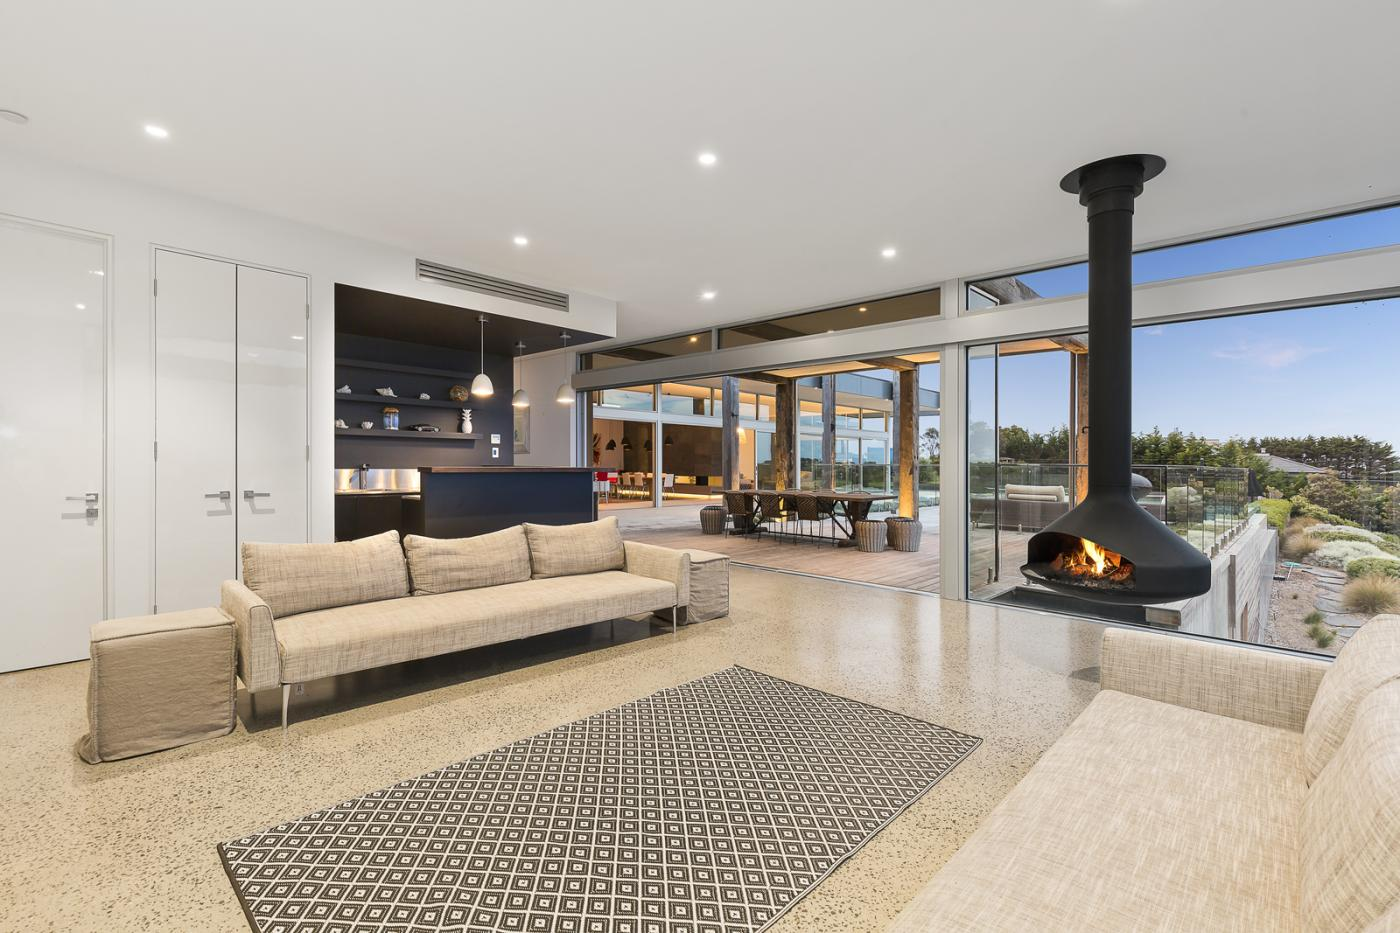 6-tea-tree-rise-portsea-vic-3944-real-estate-photo-7-xlarge-12309561